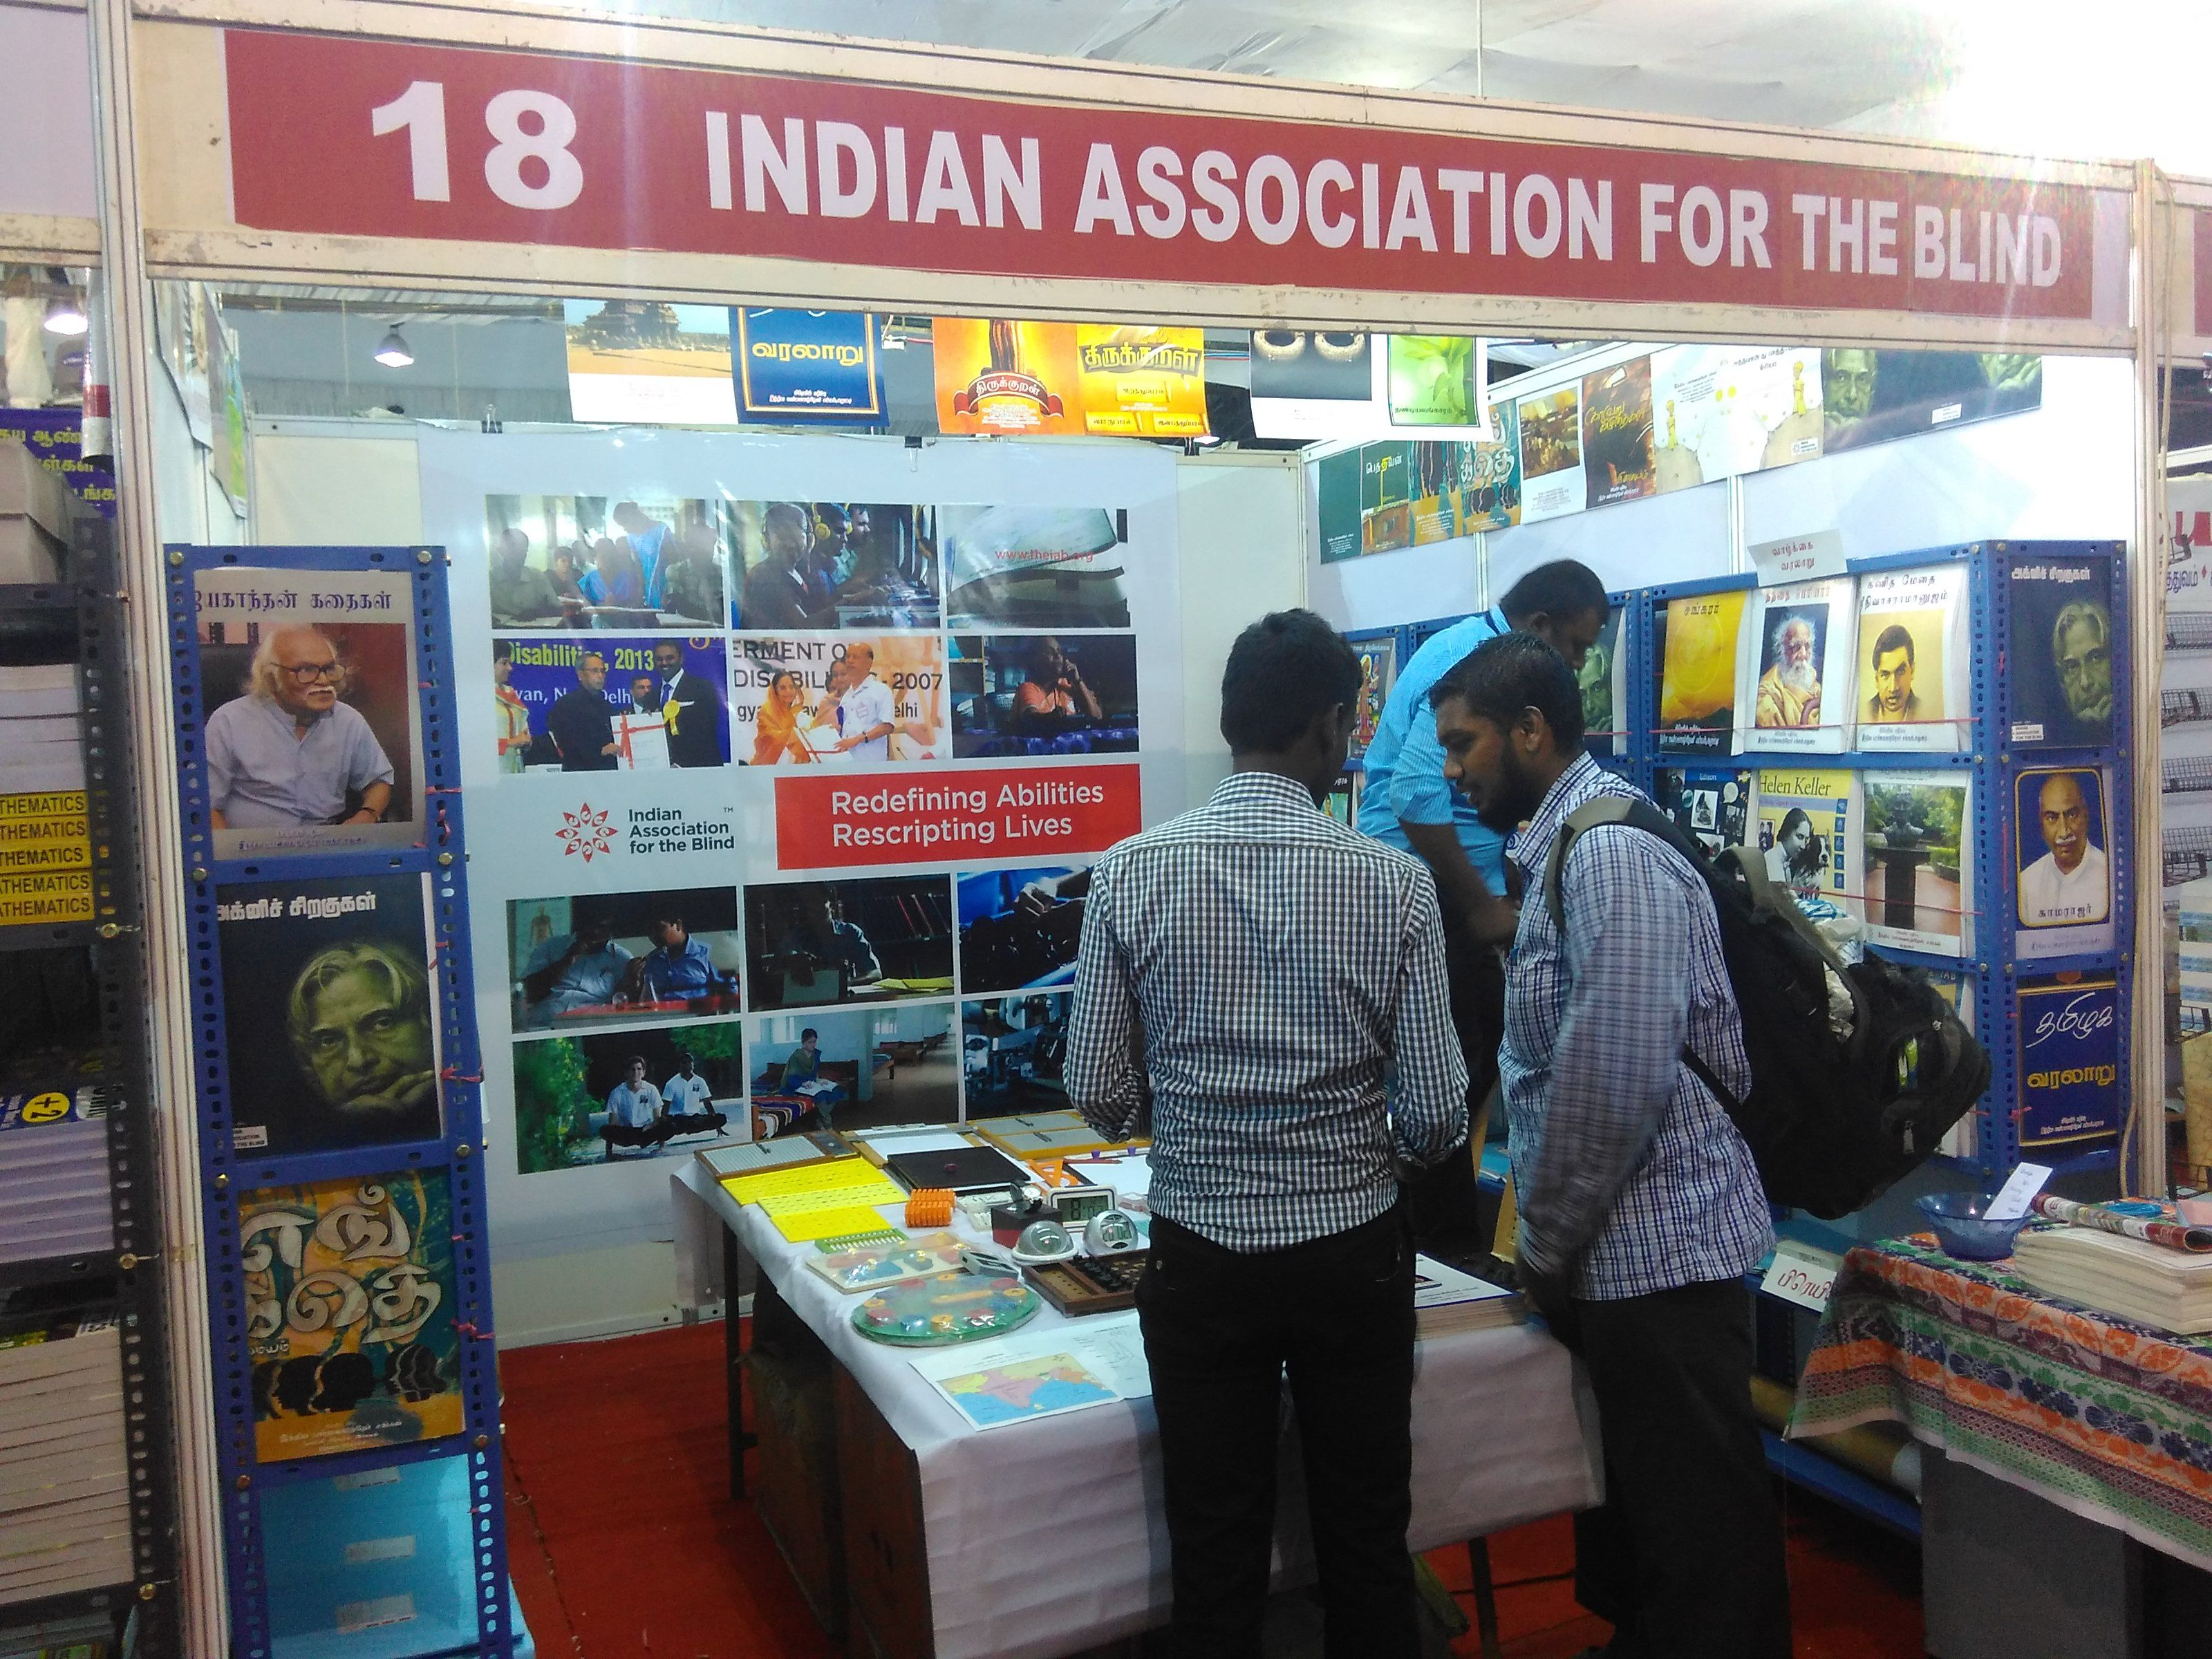 Chennai pongal book festival 2016 - Indian association for the blind